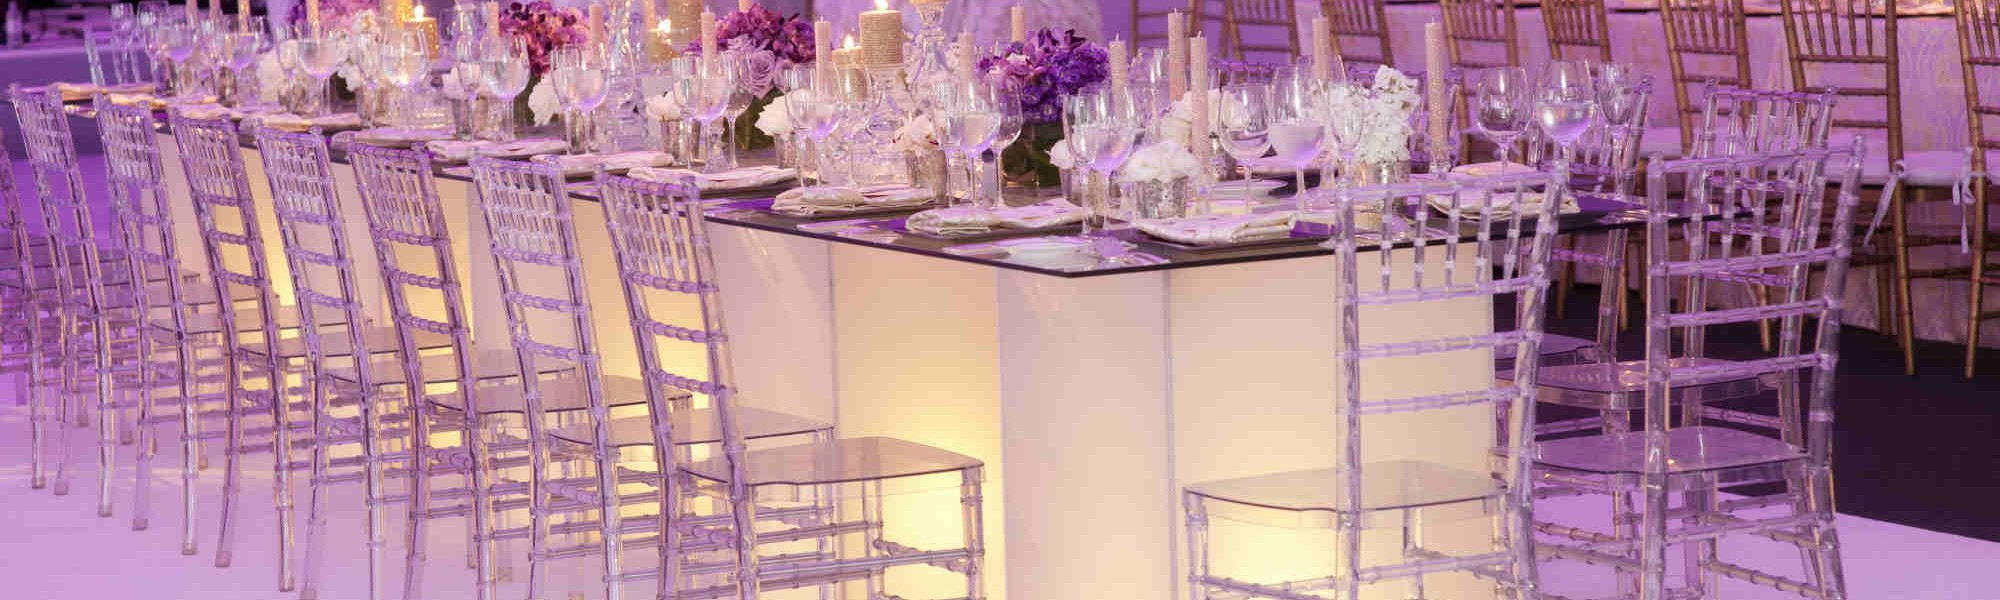 Plantation Wedding head table slider